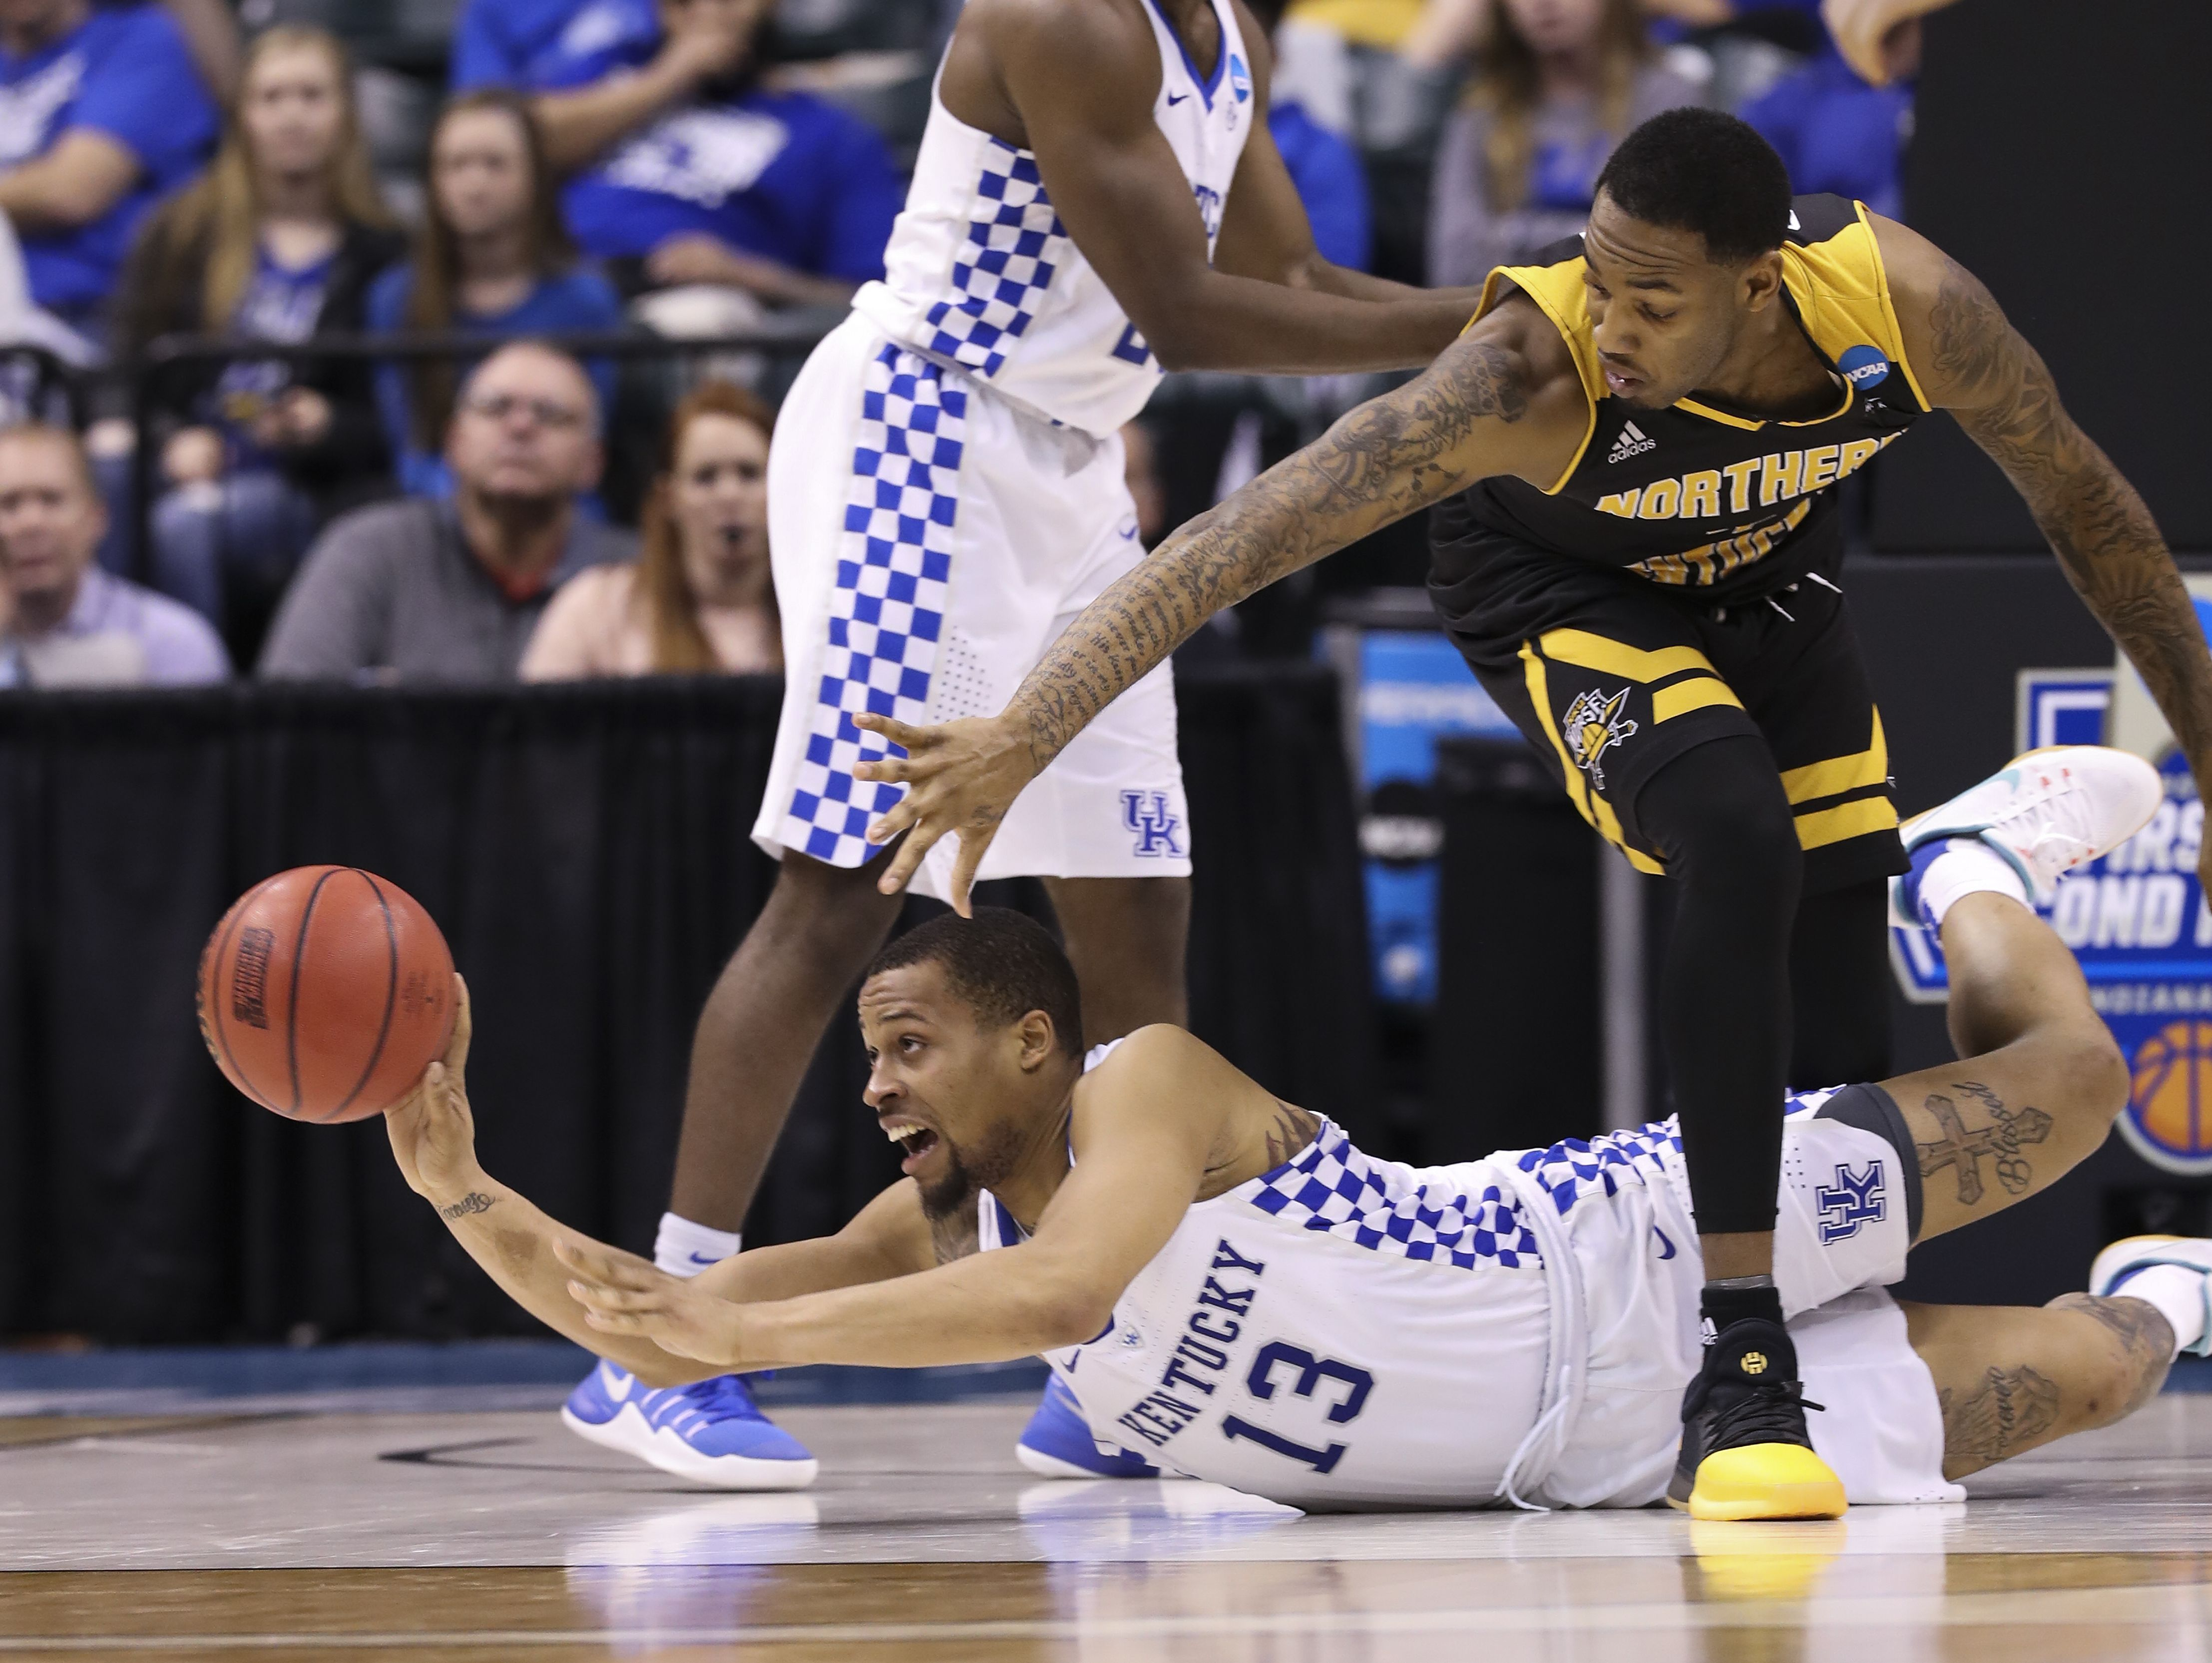 UK's Isaiah Briscoe (13) passed as he was tied up NKU's Jeff Garrett (4) during the NCAA tournament at the Bankers Life Fieldhouse in Indianapolis. Mar. 17, 2017